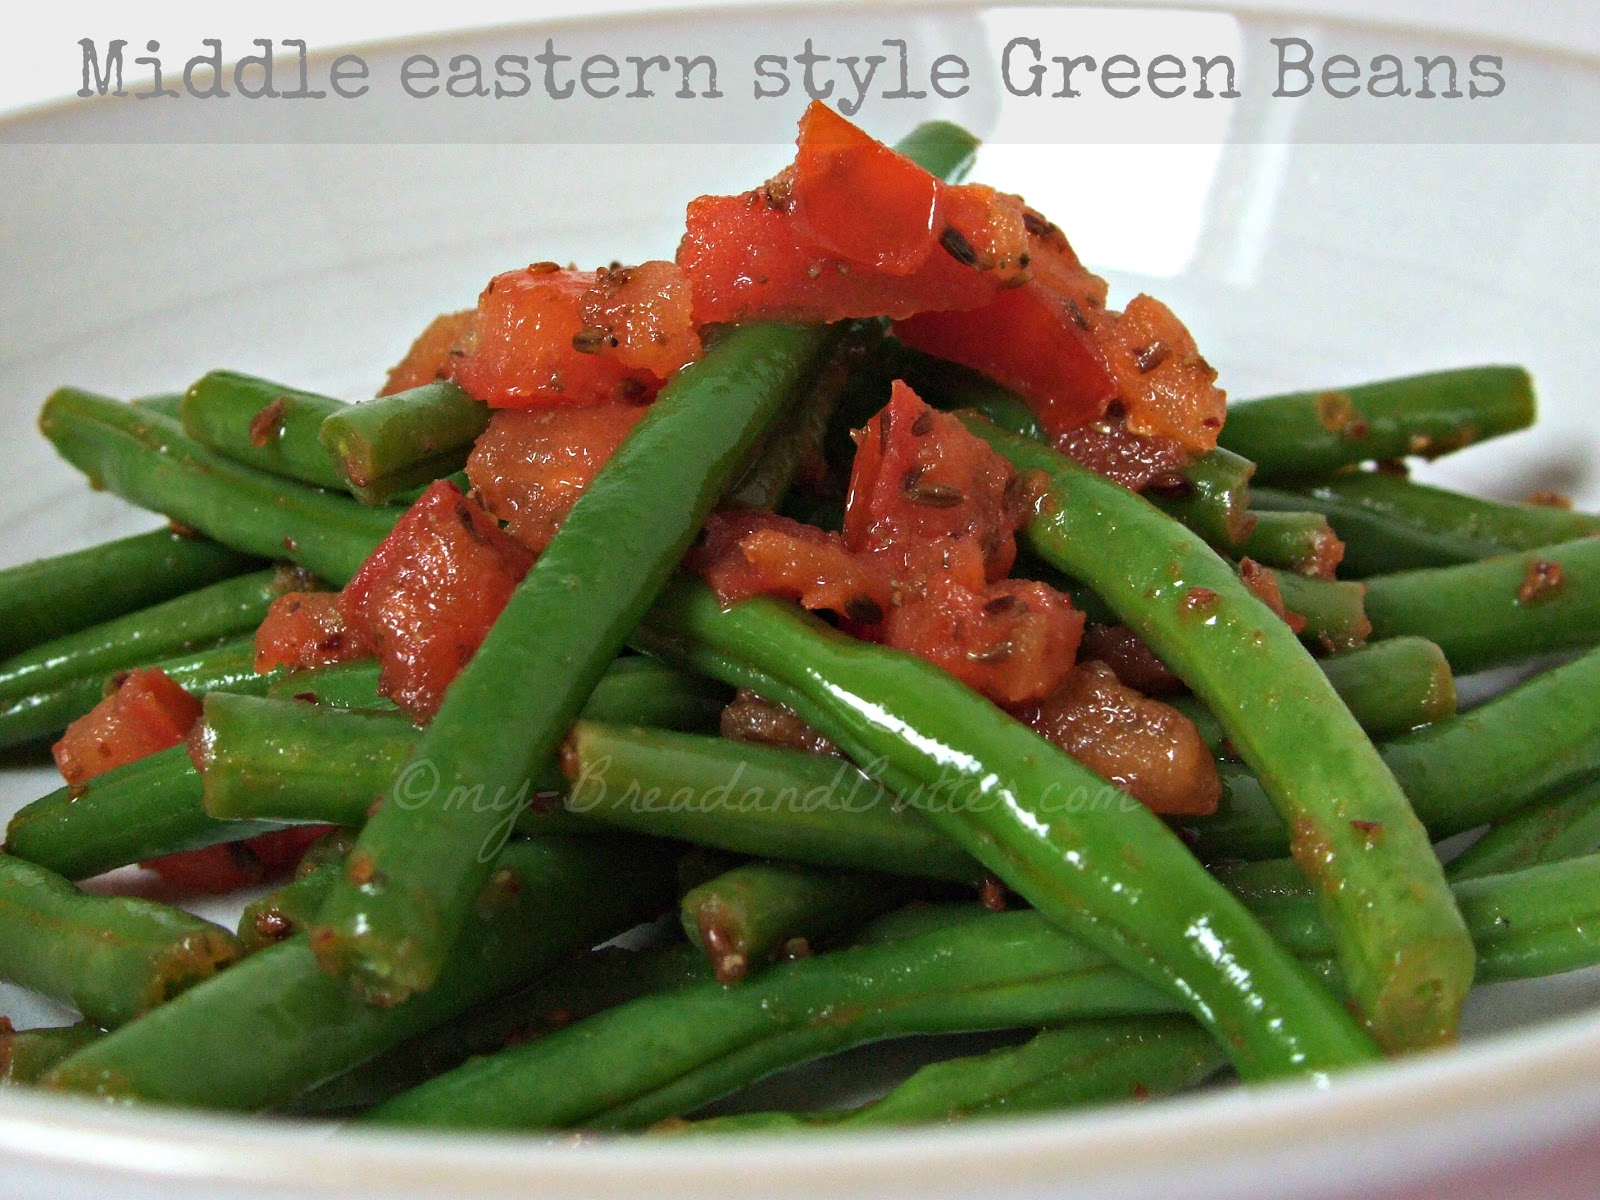 Bread and butter middle eastern style green beans for Style green